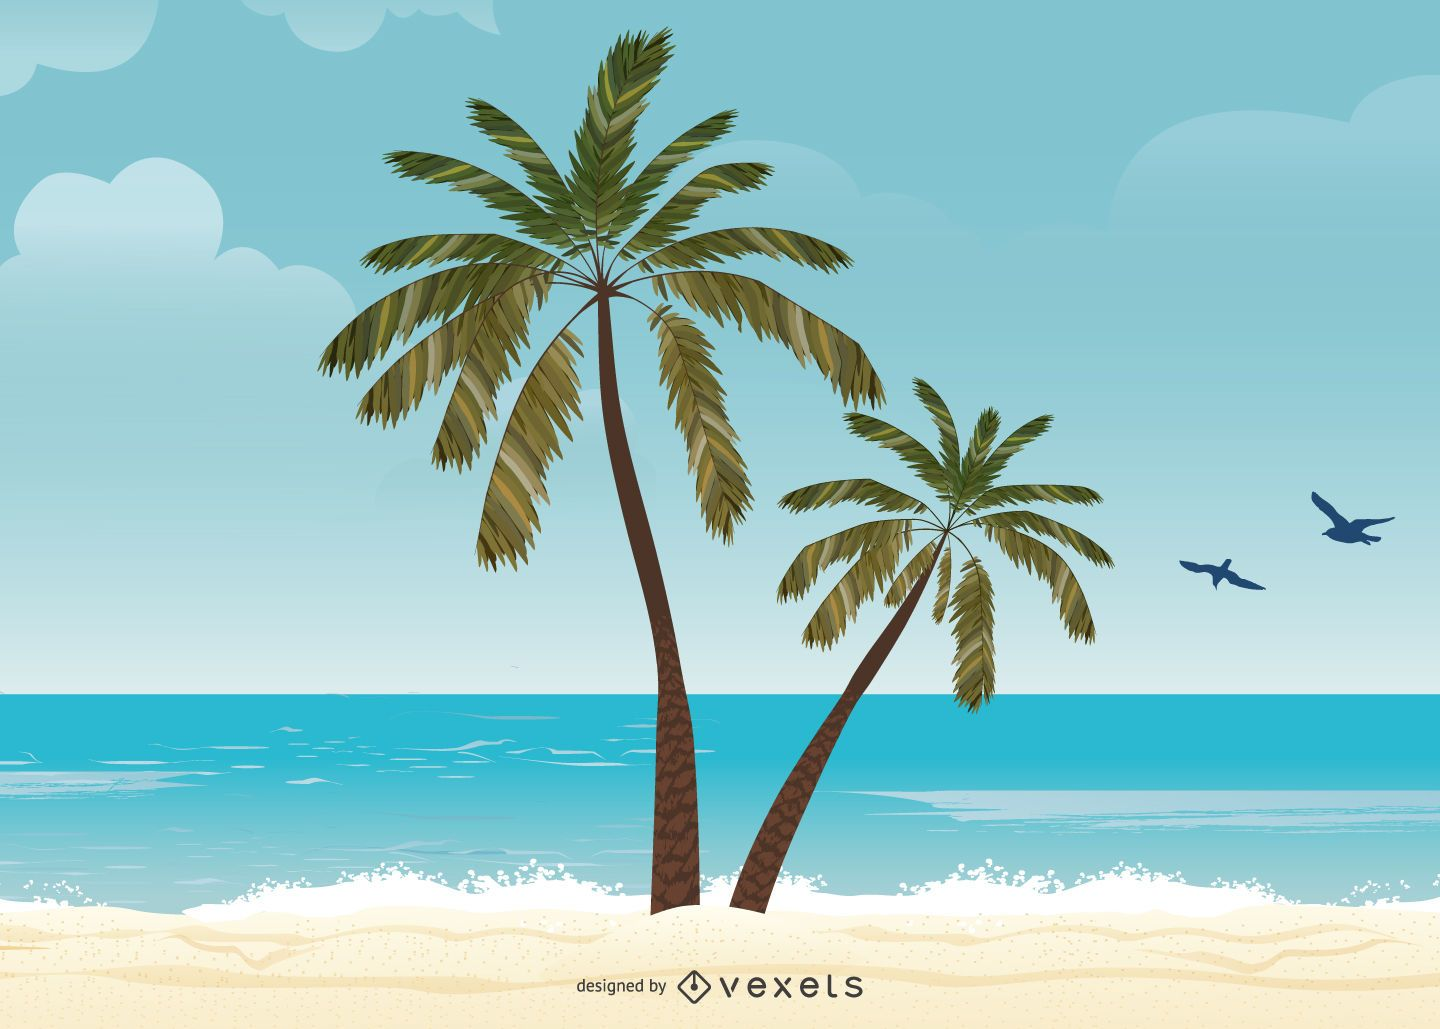 Summer island illustration with palm trees